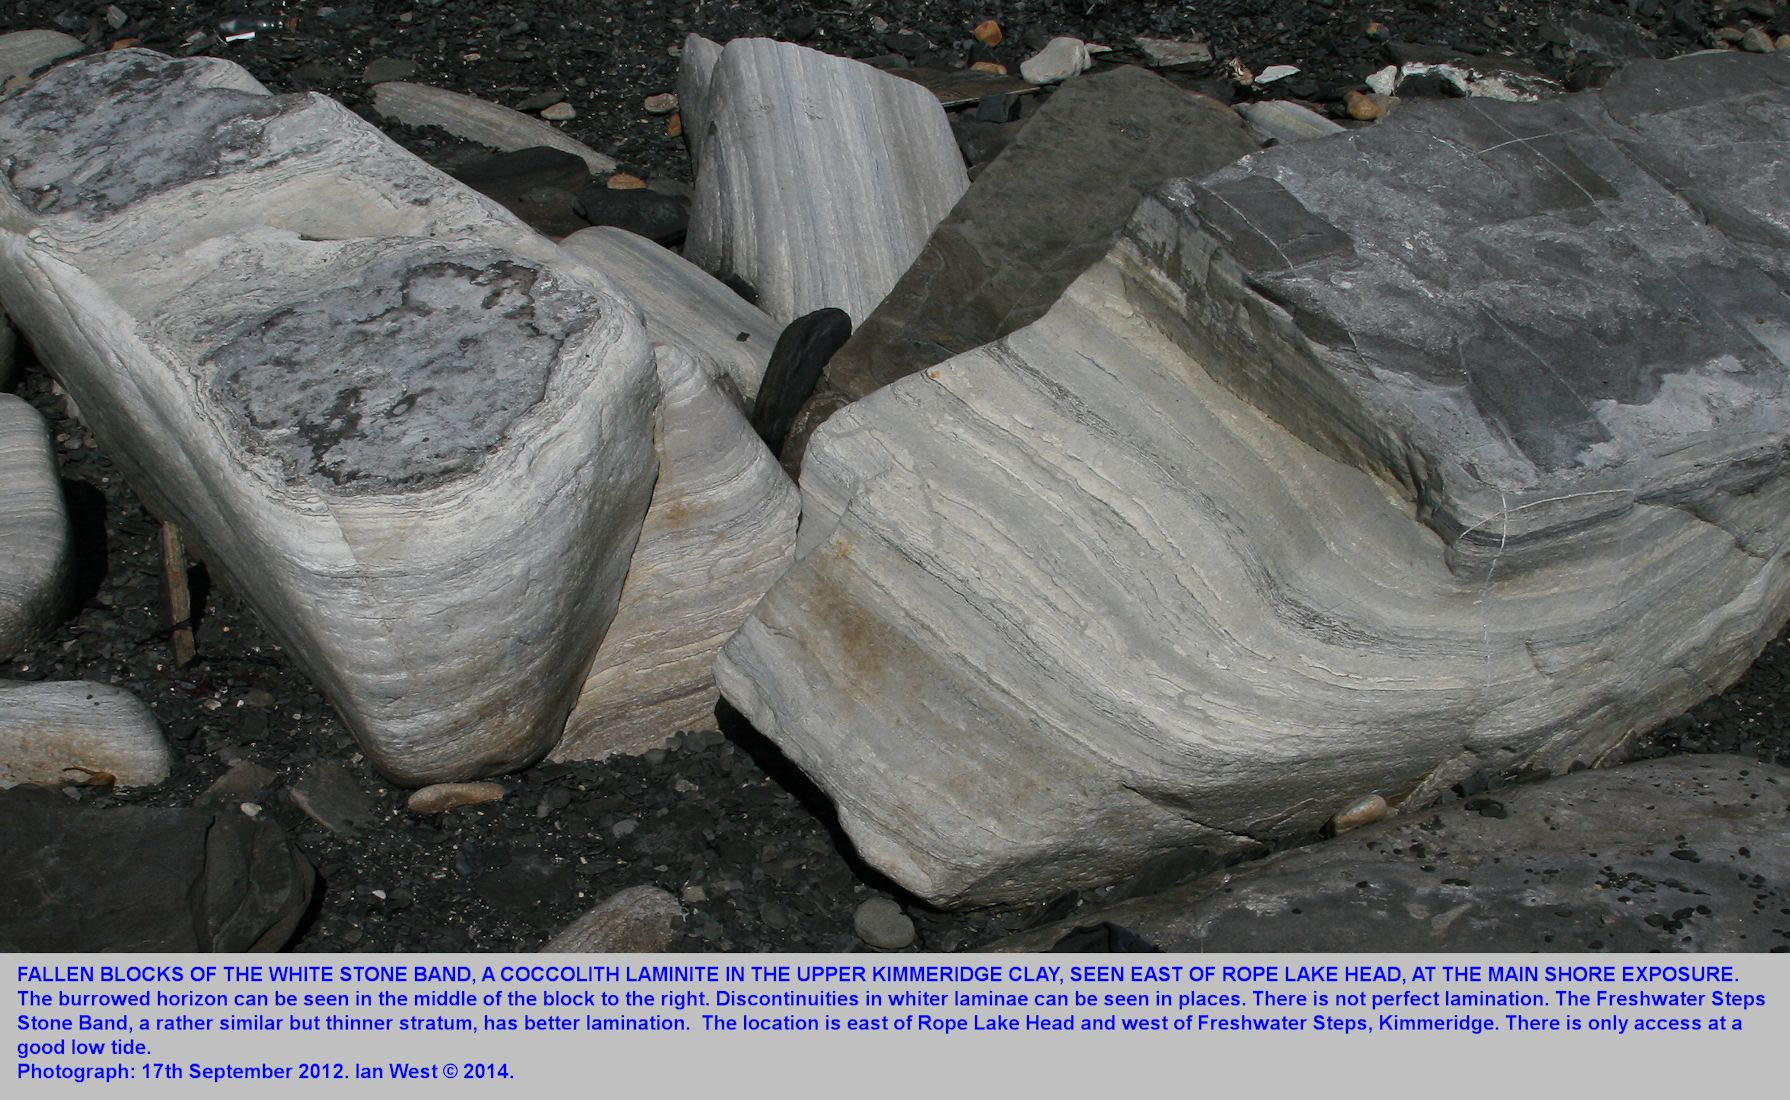 Fallen blocks of the White Stone Band, seen on the shore east of Rope Lake Head, and near the White Stone Band ledge at sea level, Kimmeridge, Dorset